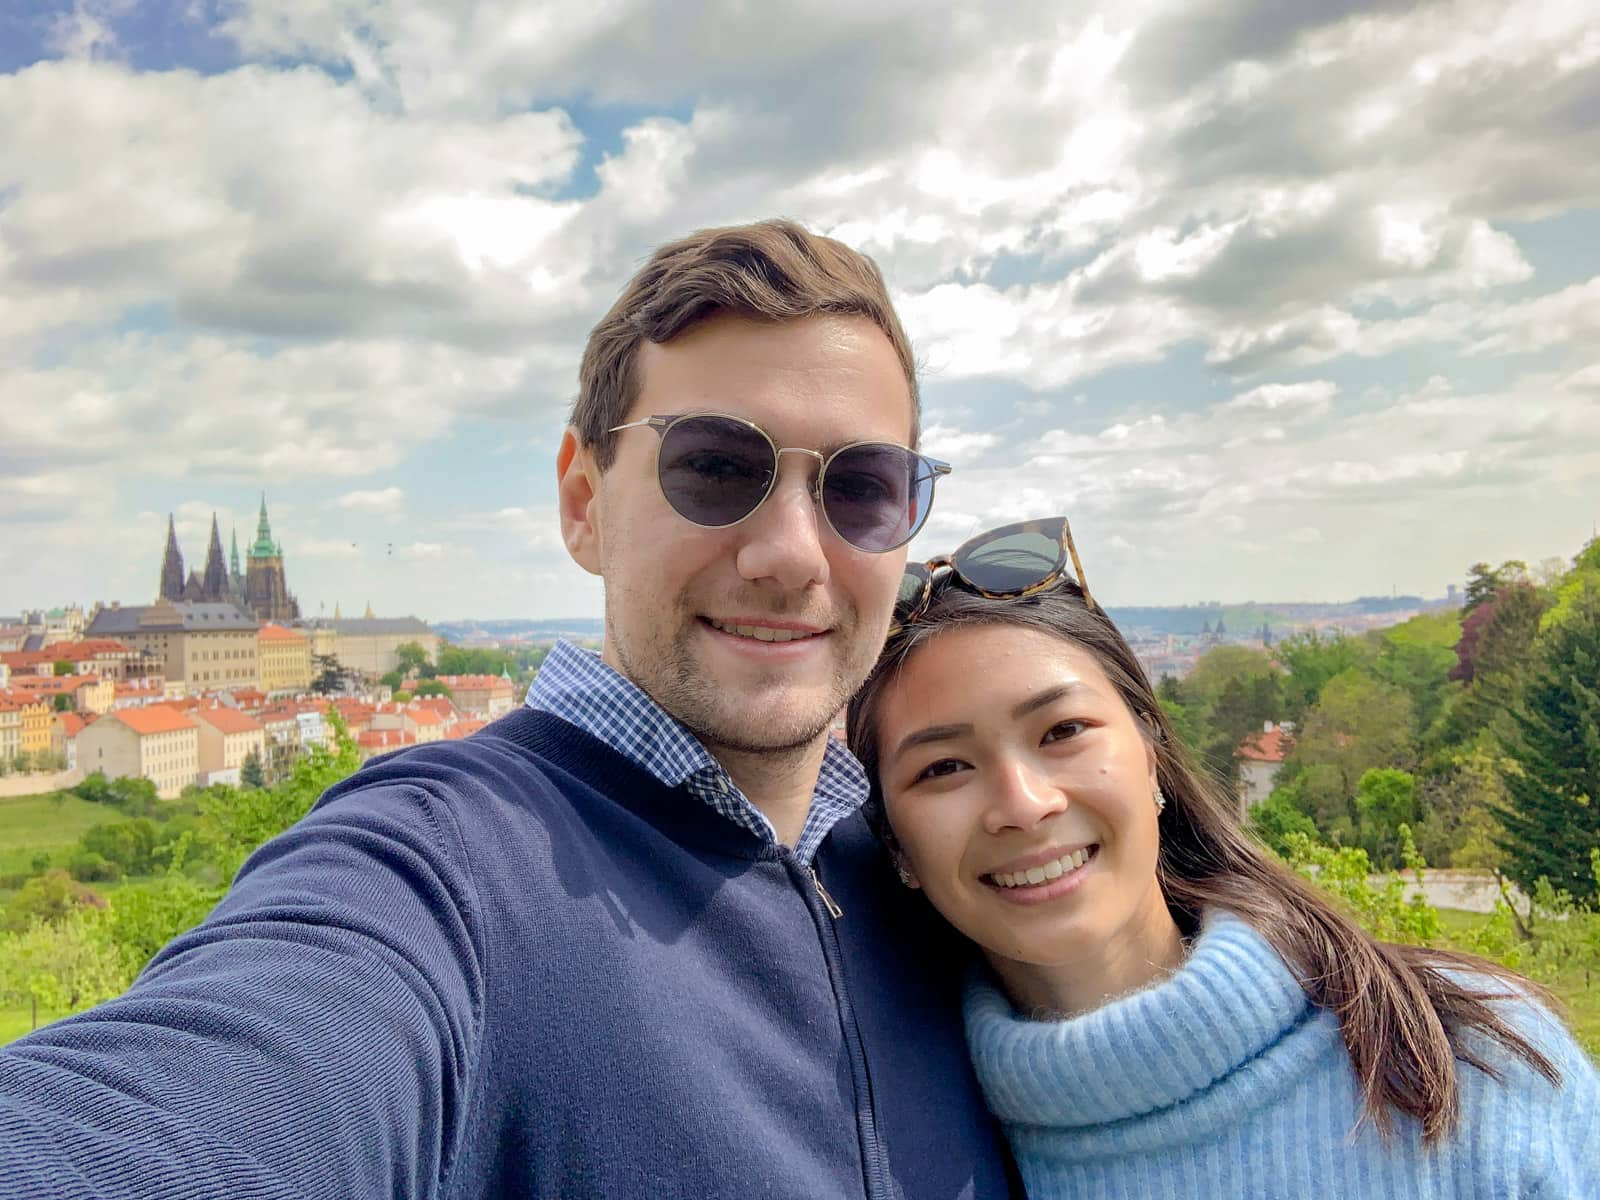 A man and woman taking a selfie, with the city of Prague in the background. The man has sunglasses on, and is wearing a dark jacket, the woman has sunglasses on top of her head and is wearing a light blue sweater.